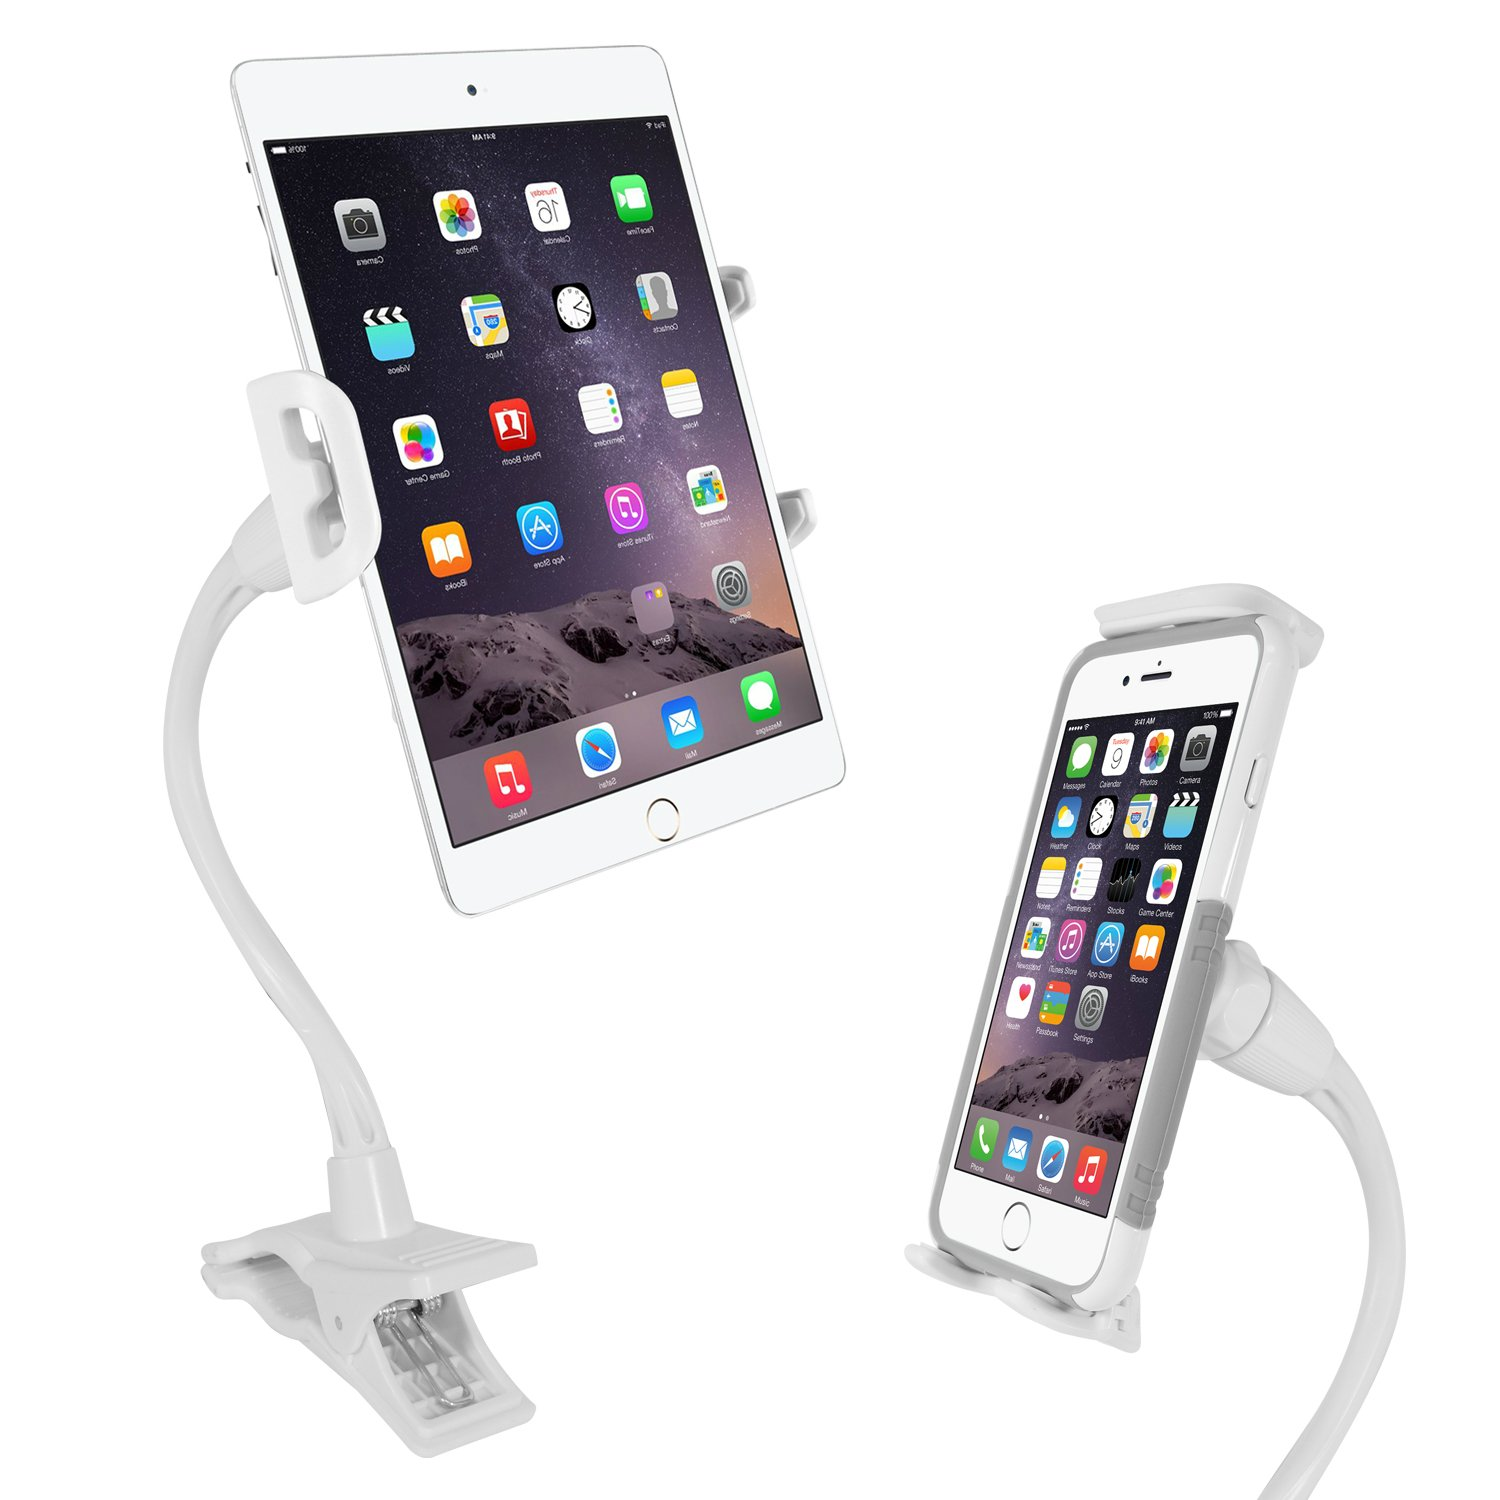 Macally Flexible Gooseneck Tablet Holder, Clamp Mount Stand with Lazy Arm Phone Holder Clip for The iPad Pro 10.5/9.7 Air Mini iPhone Nintendo Switch Samsung Galaxy Tab etc.